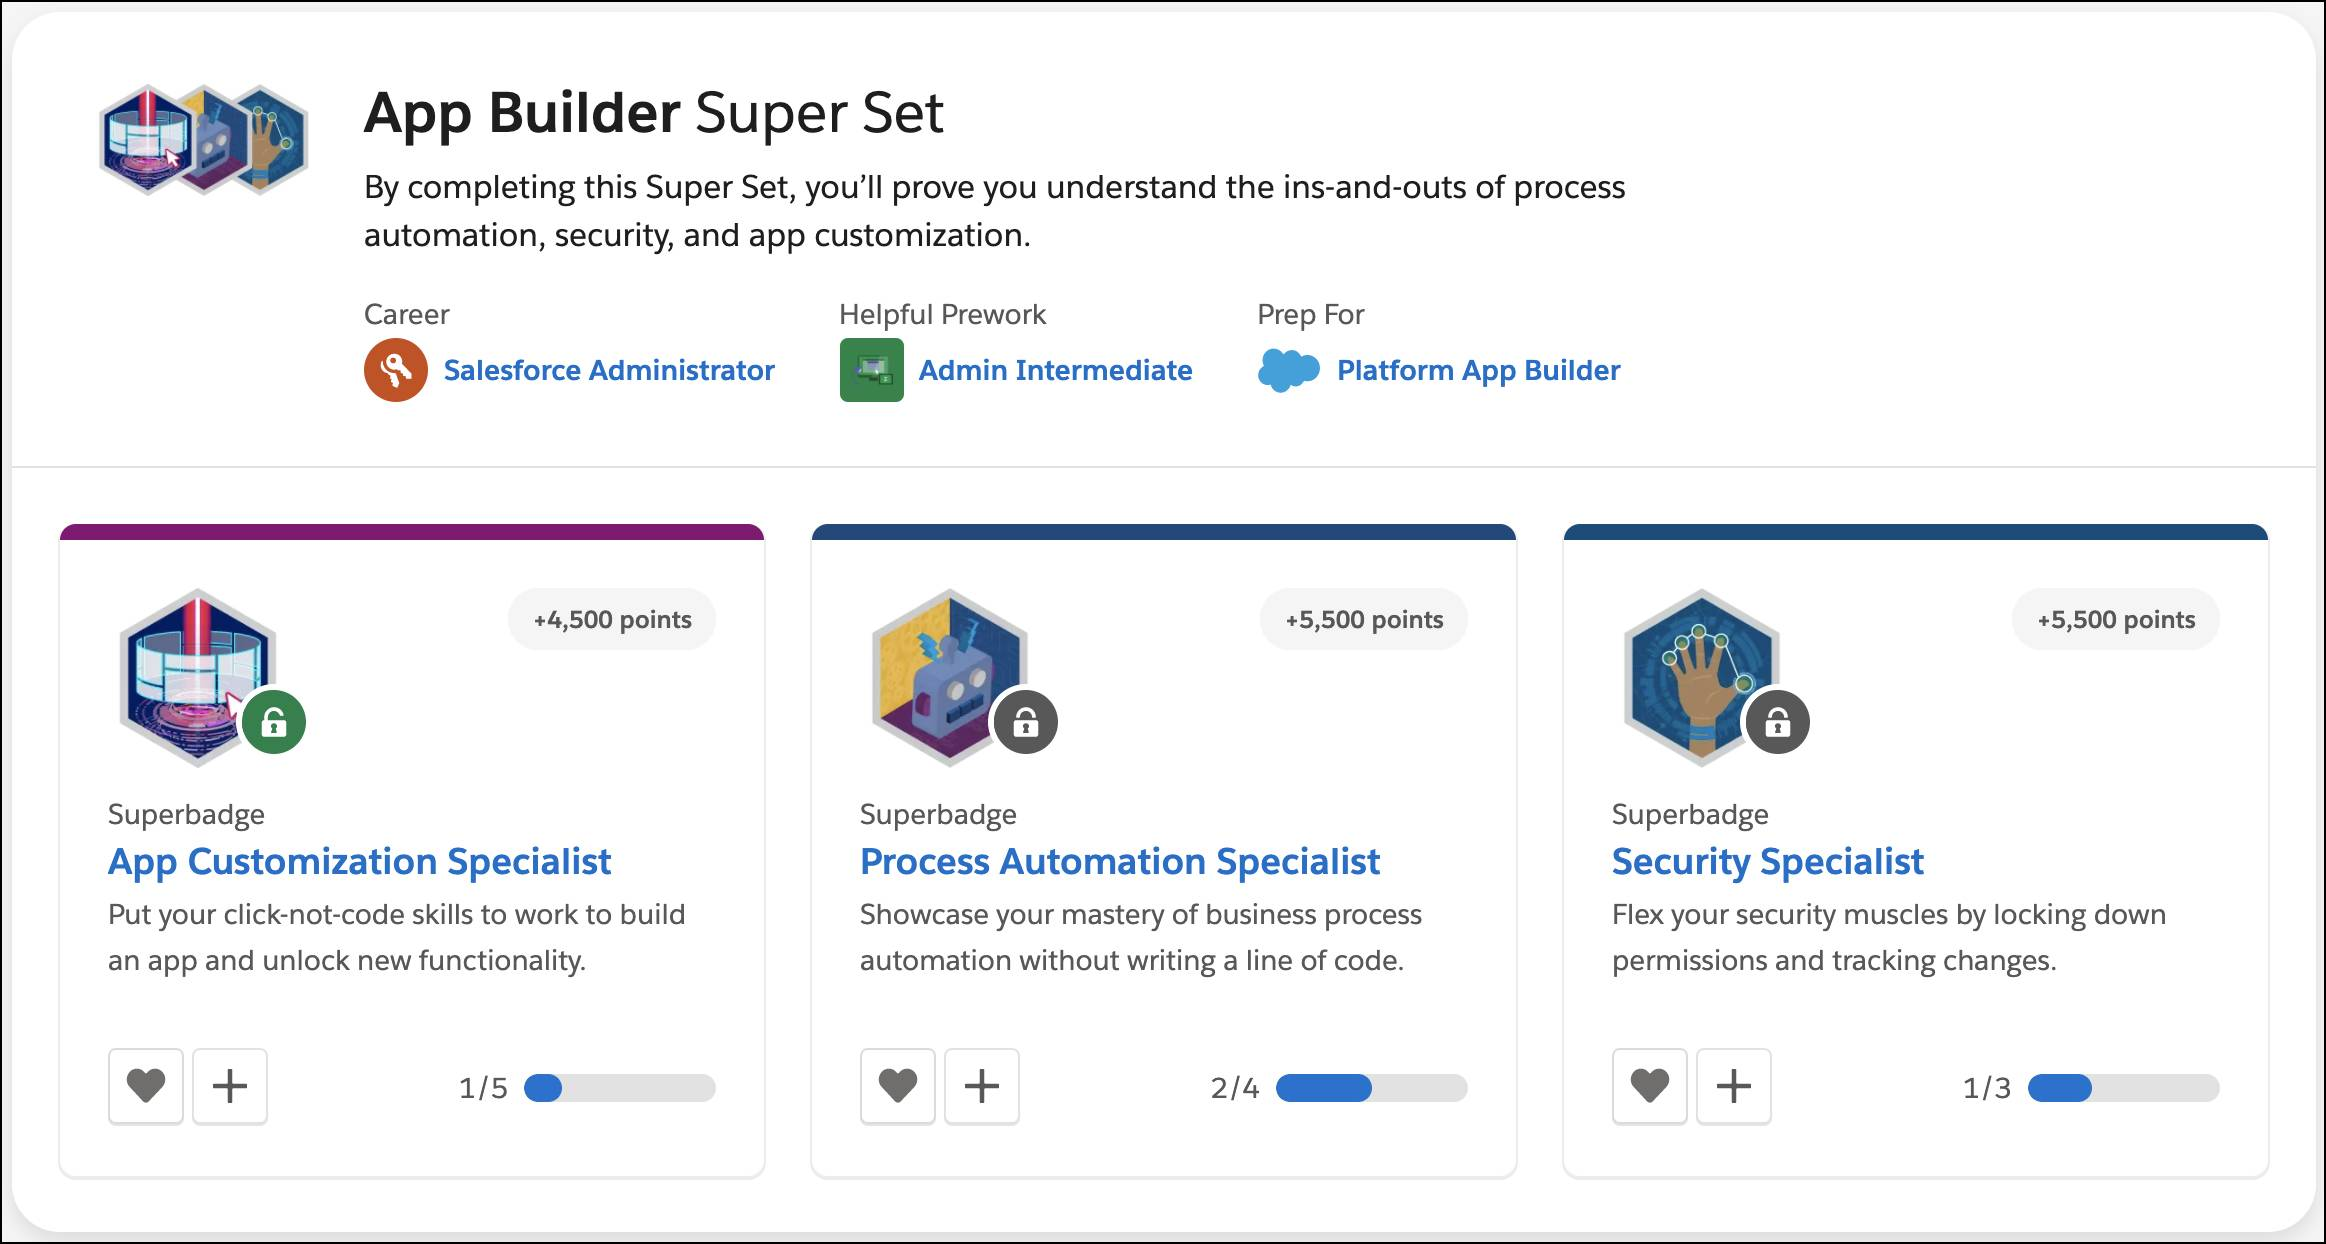 The superbadges page in Trailhead, showing a selection of superbadges.